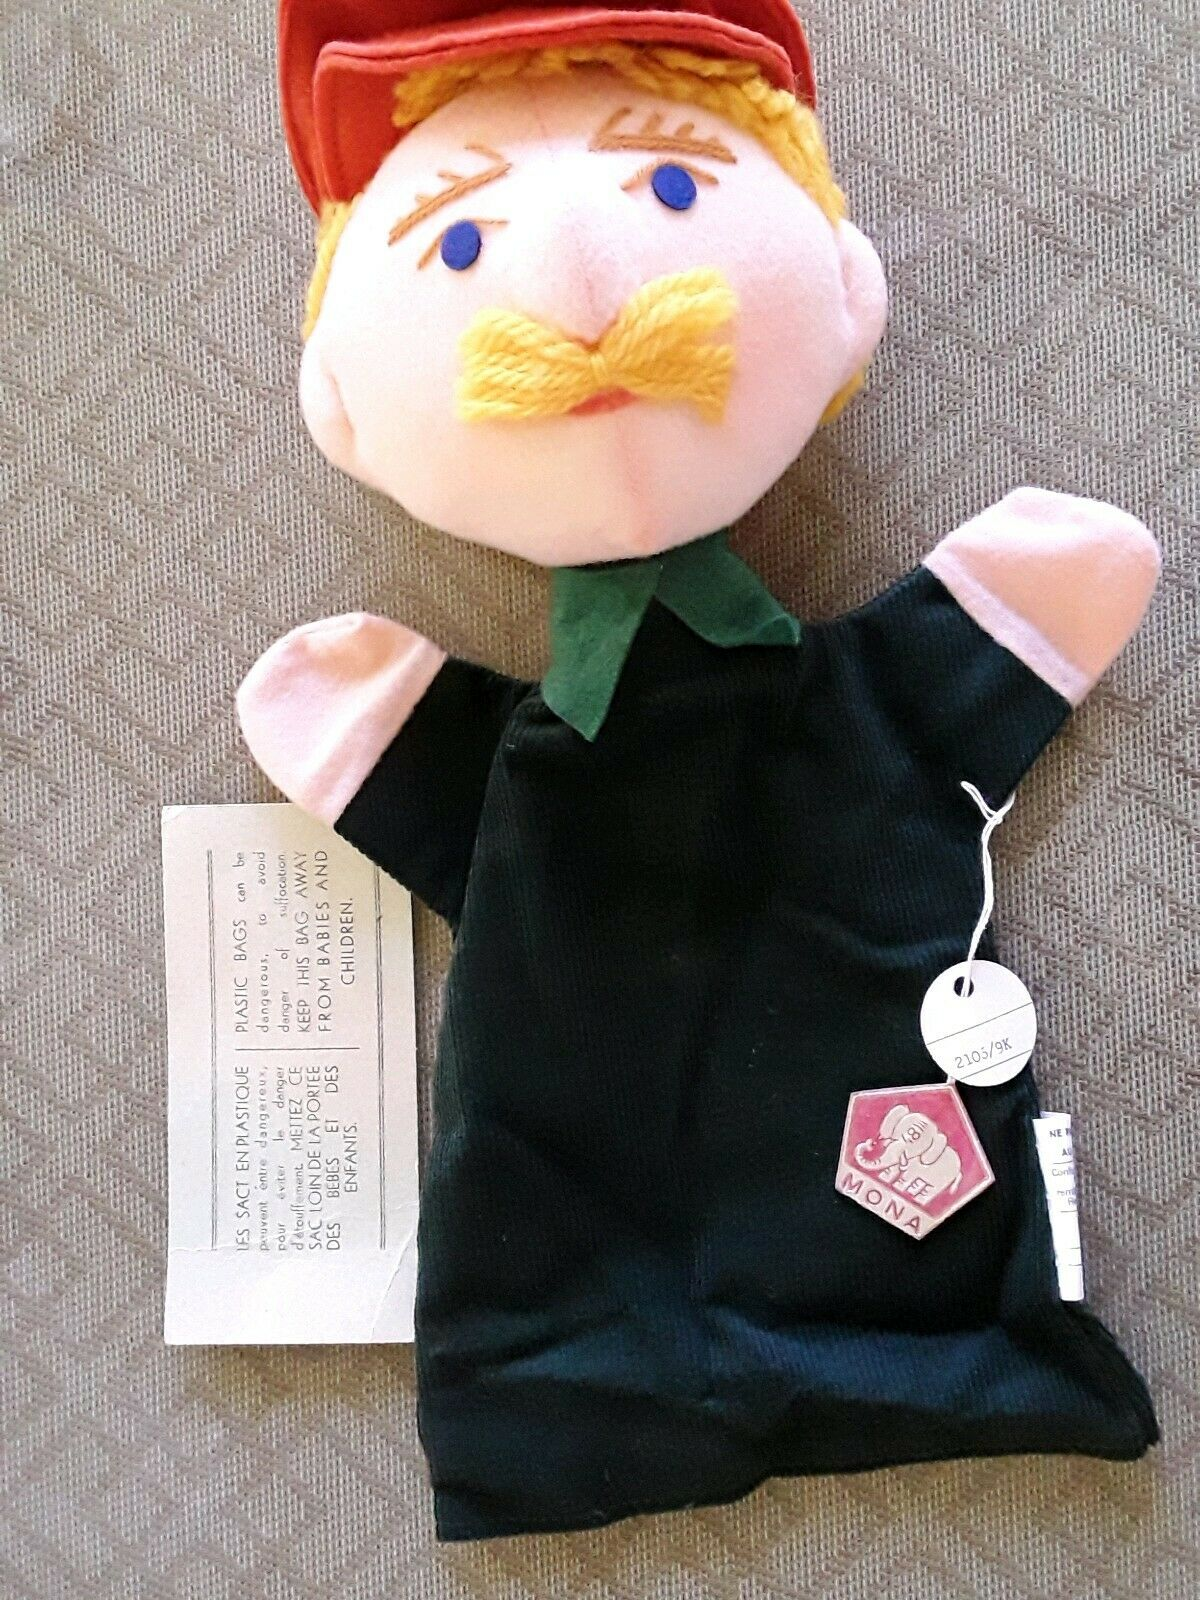 VINTAGE He fatto PUPPET BY MONA  CZECH BRe nuovo IN FACTORY borsa WITH TAGS   A28  classico senza tempo